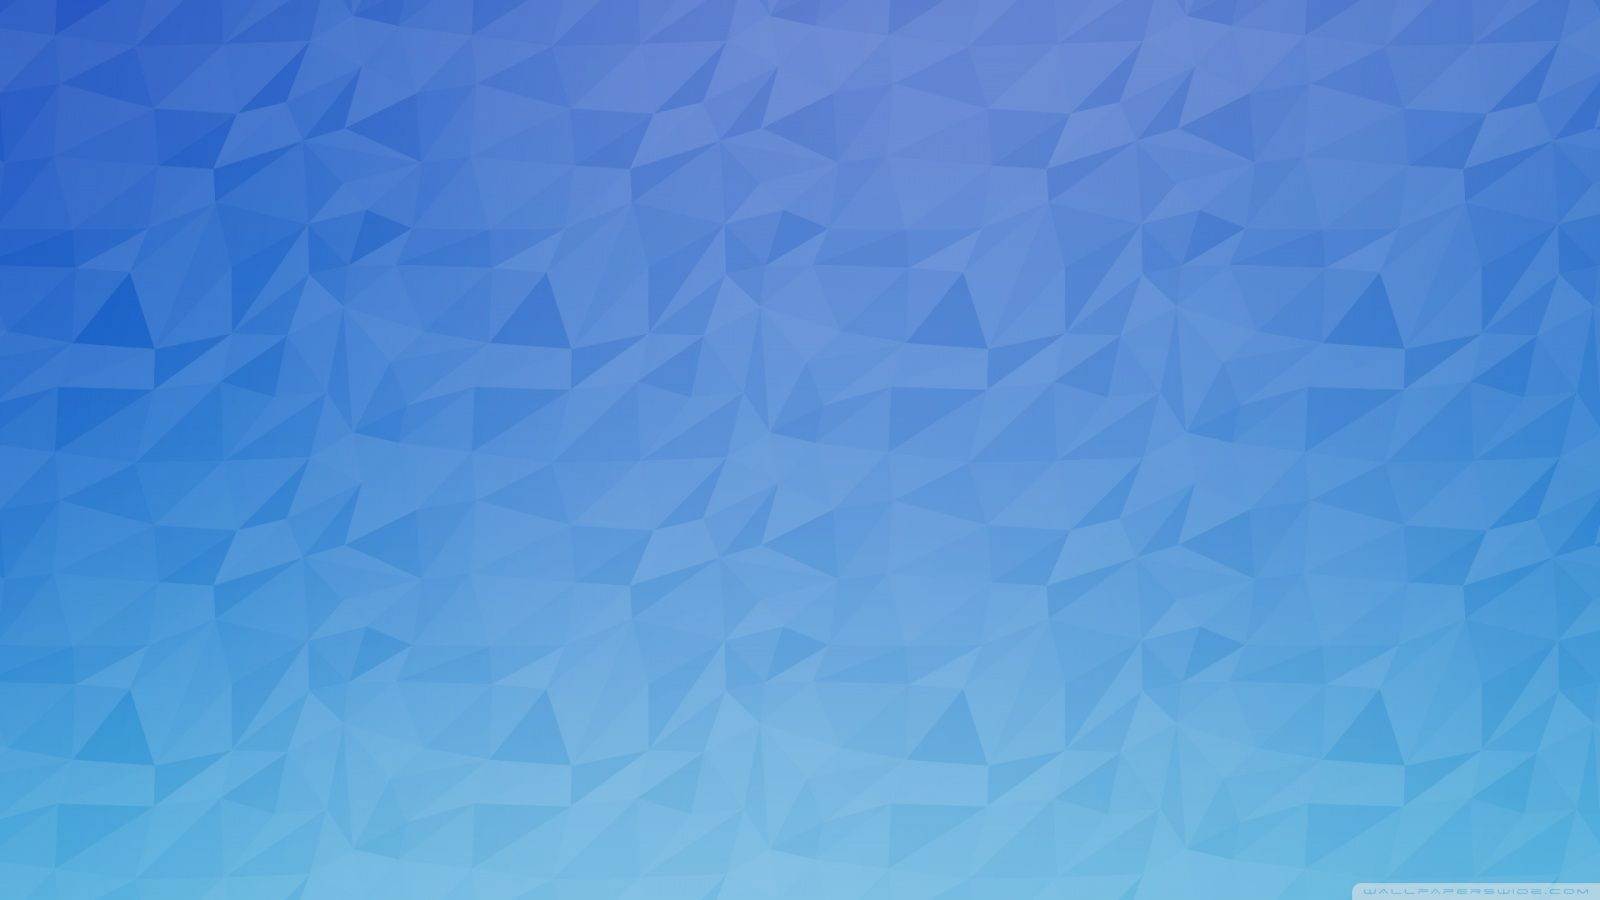 Polygon Blue Hd Desktop Wallpaper Widescreen High Definition Blue Wallpapers Wallpaper Desktop Wallpapers Backgrounds